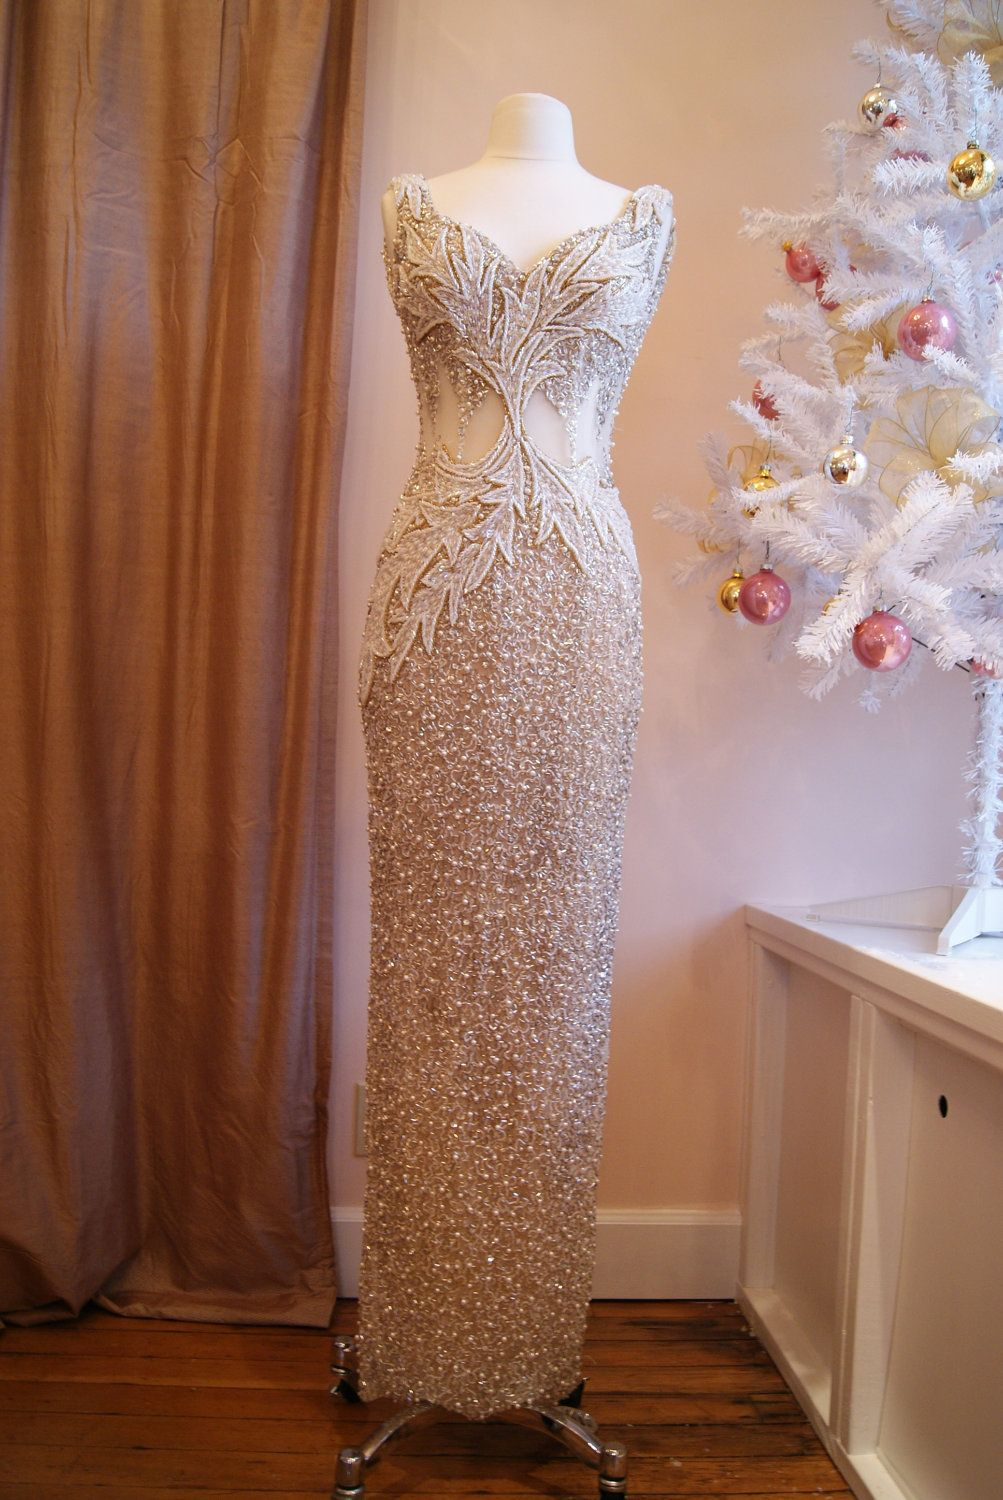 Vintage Bead and Sequin Gown with Illusion Bodice // Holiday Vintage Dress // Sequin and Beaded Dress by Claires Collection Size S. $598.00, via Etsy.